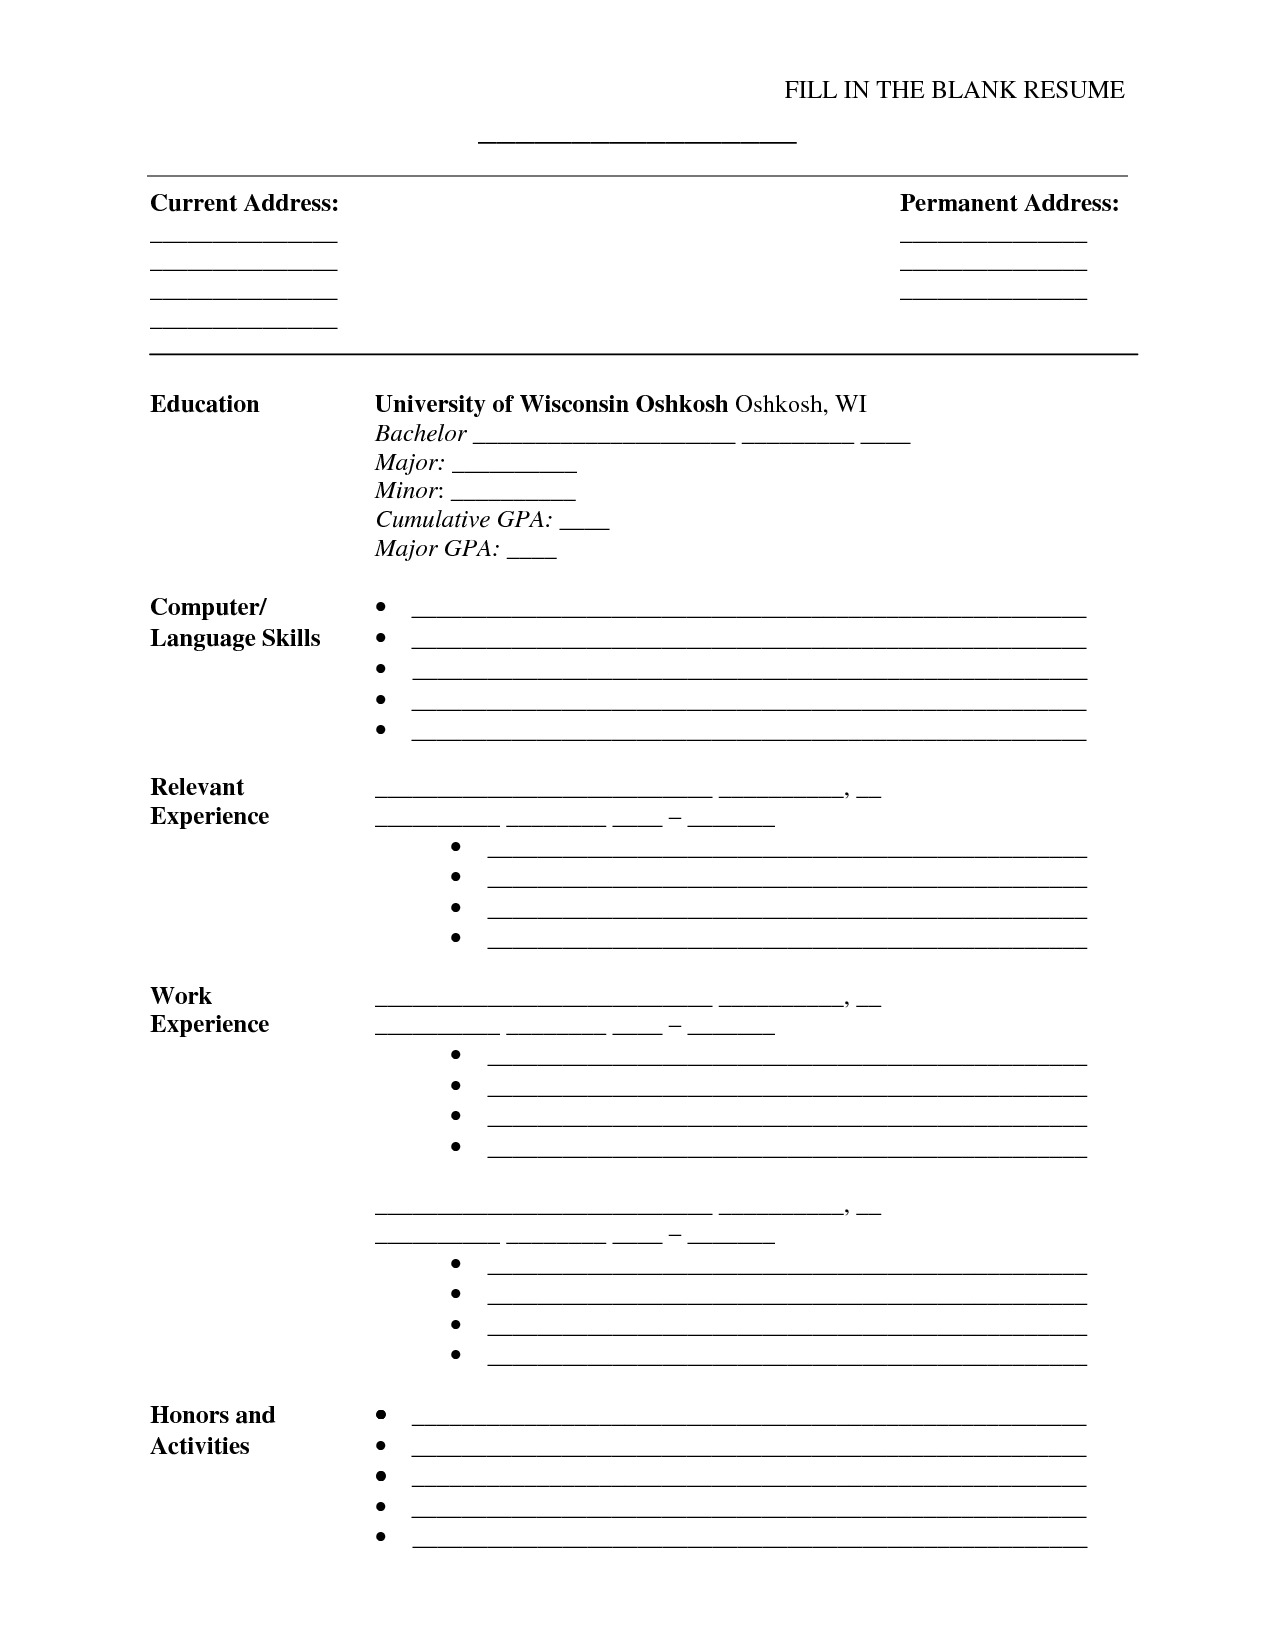 resume template fill in